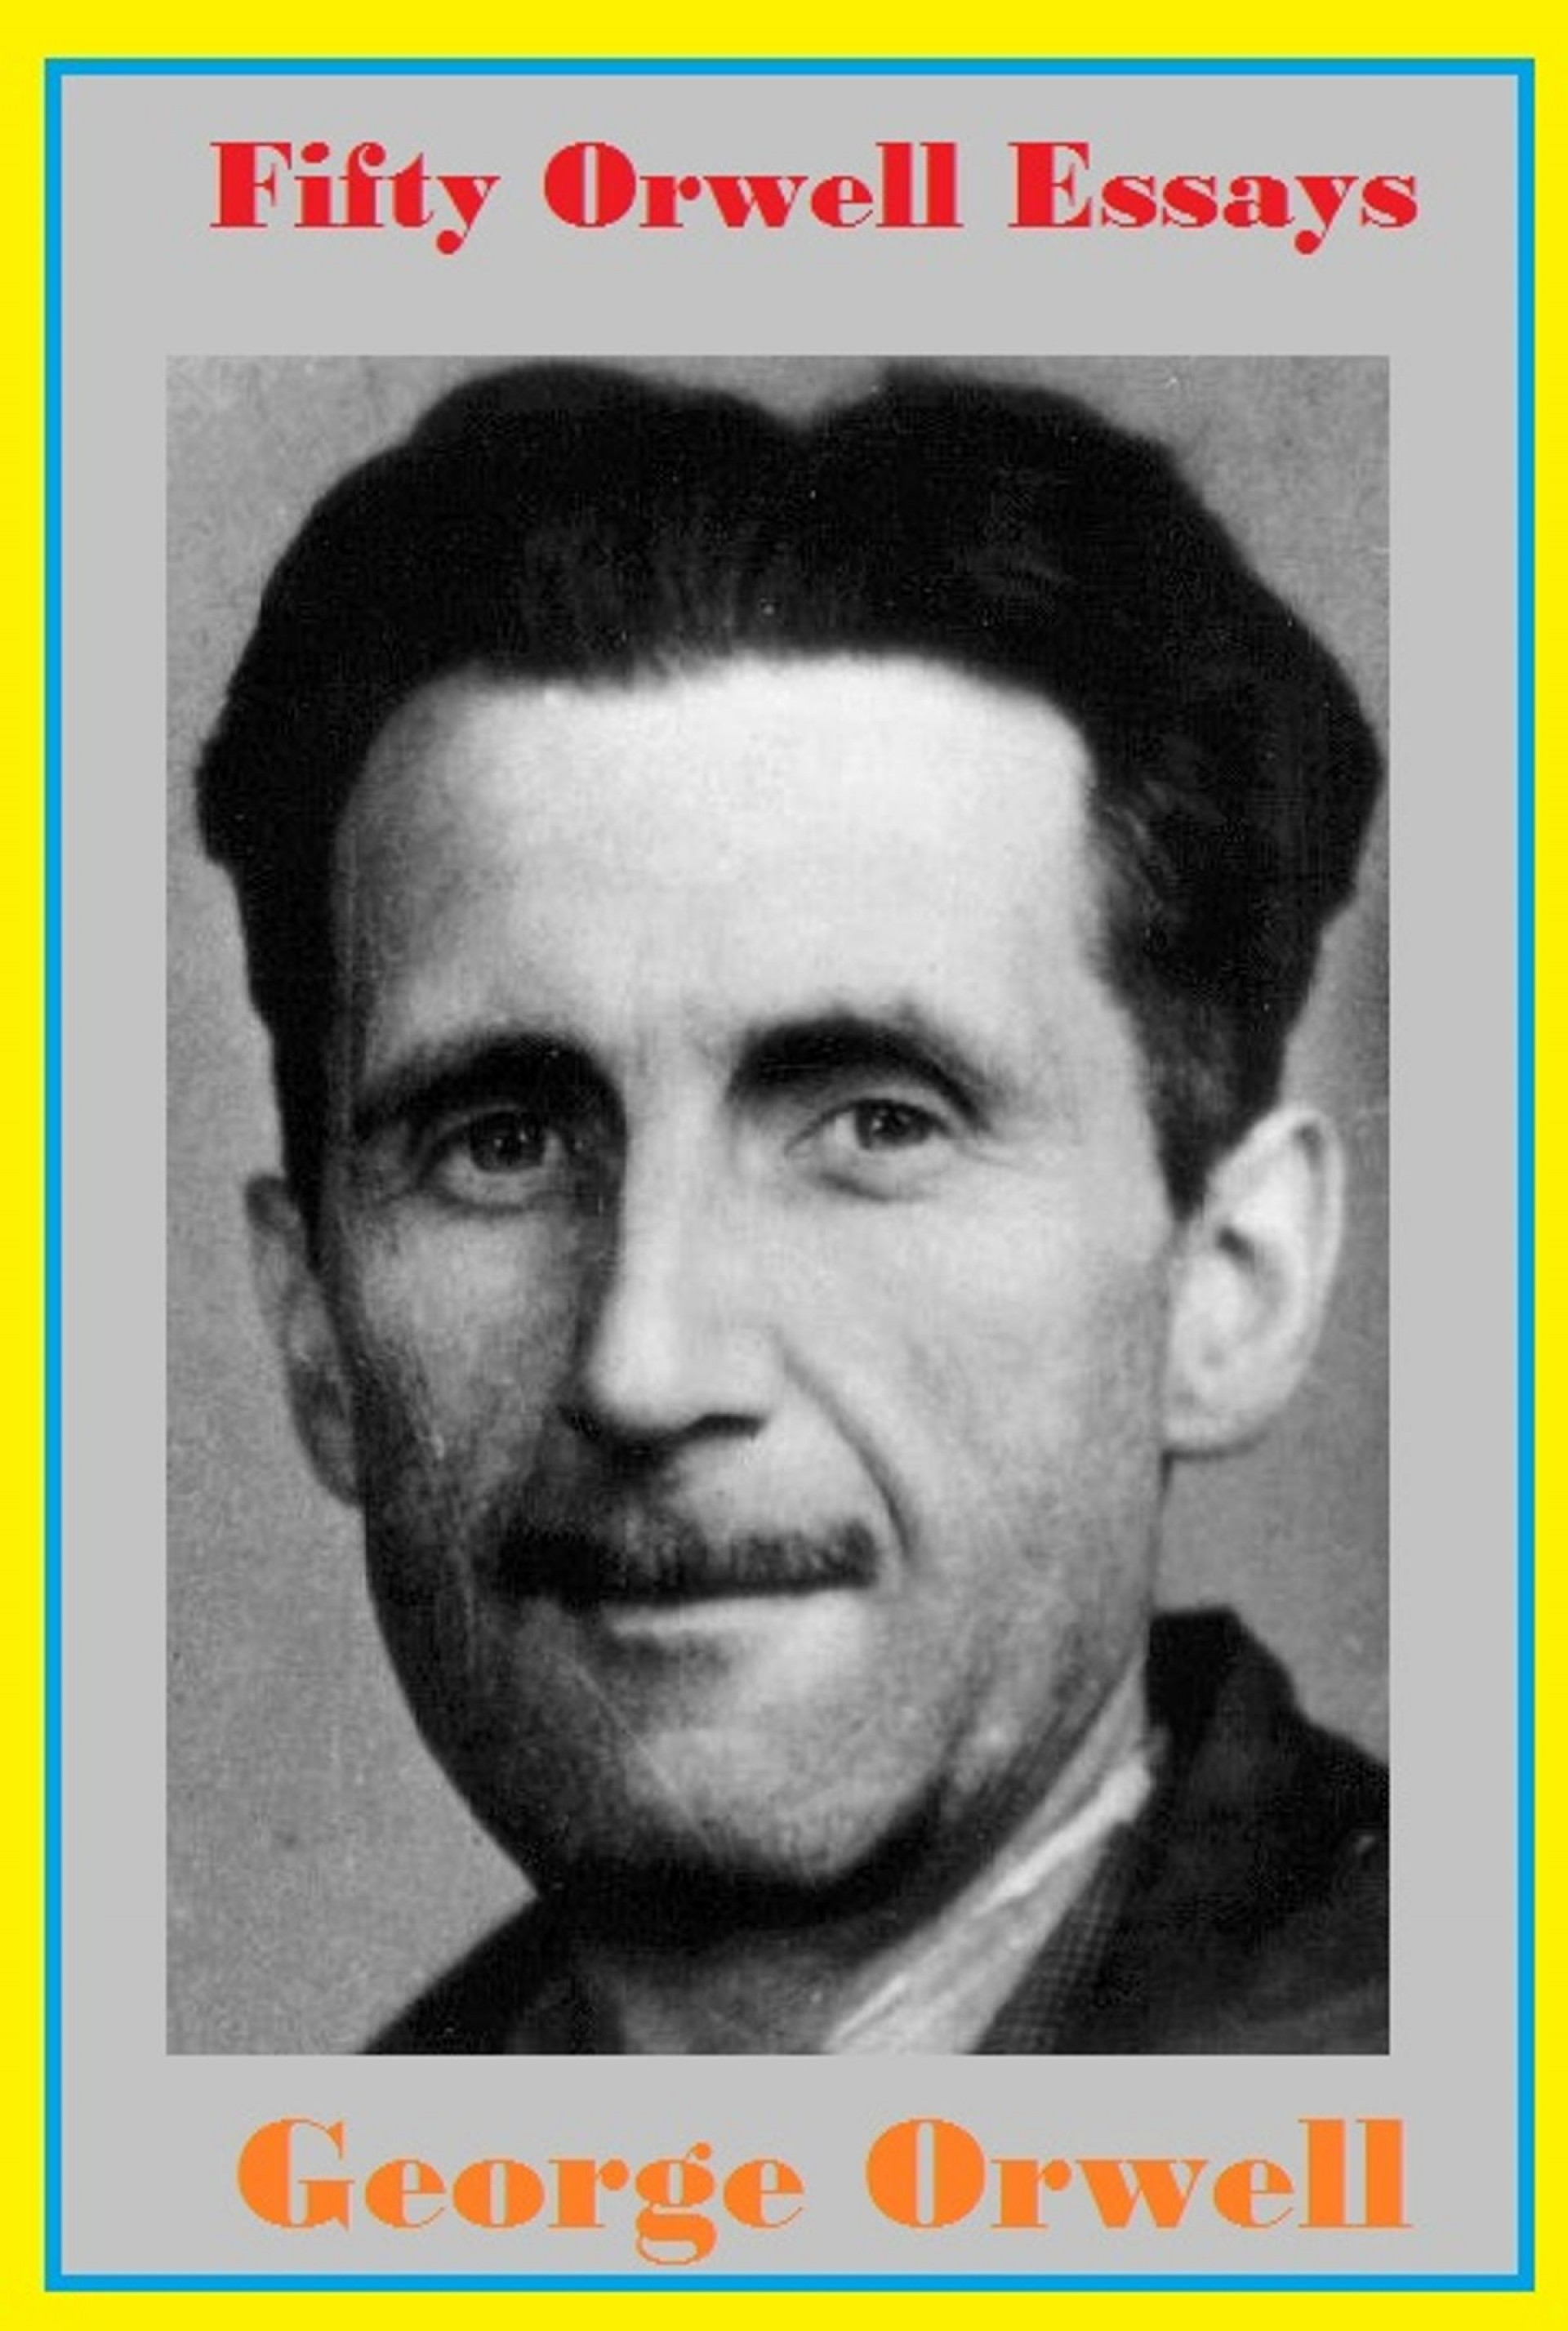 007 Essay Example Fifty Orwell Essays Frightening George 1984 Summary Collected Pdf On Writing 1920